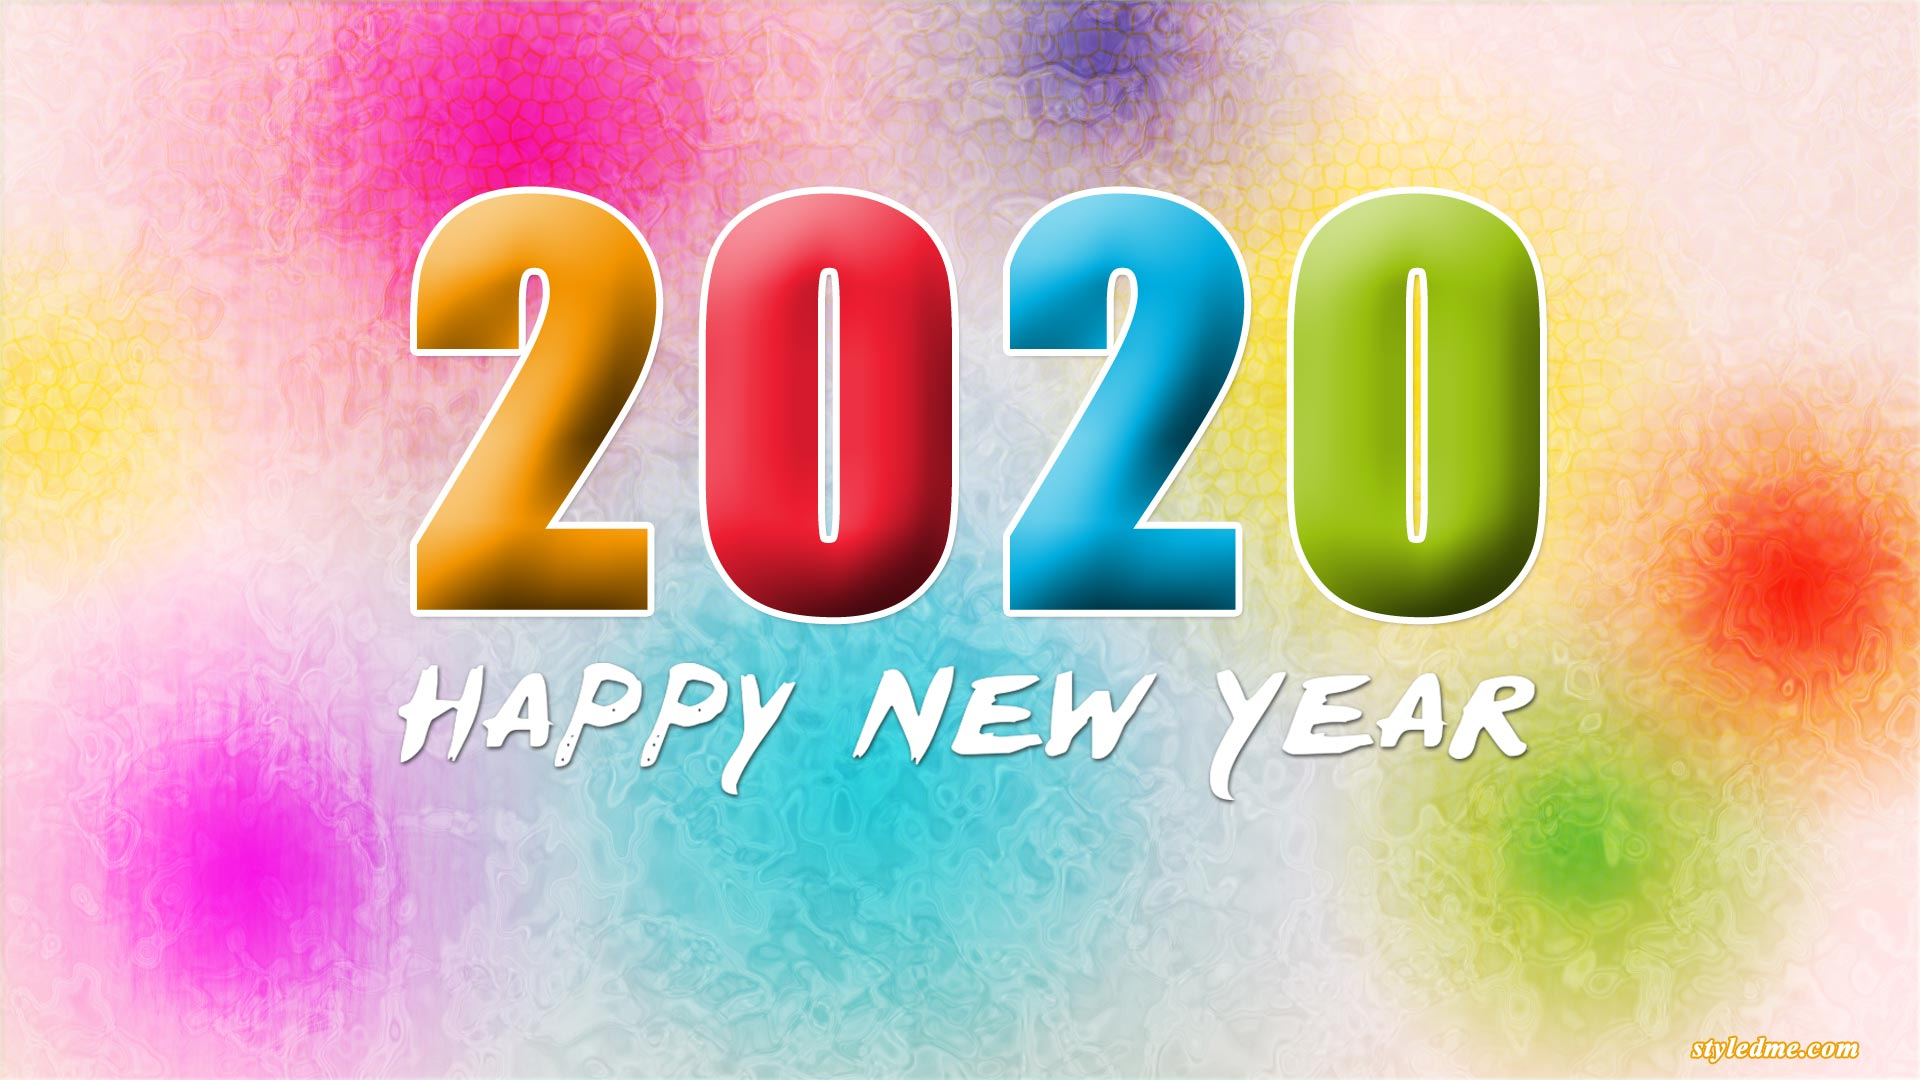 Happy New Year 2020 wallpaper full hd pic free download with wishes